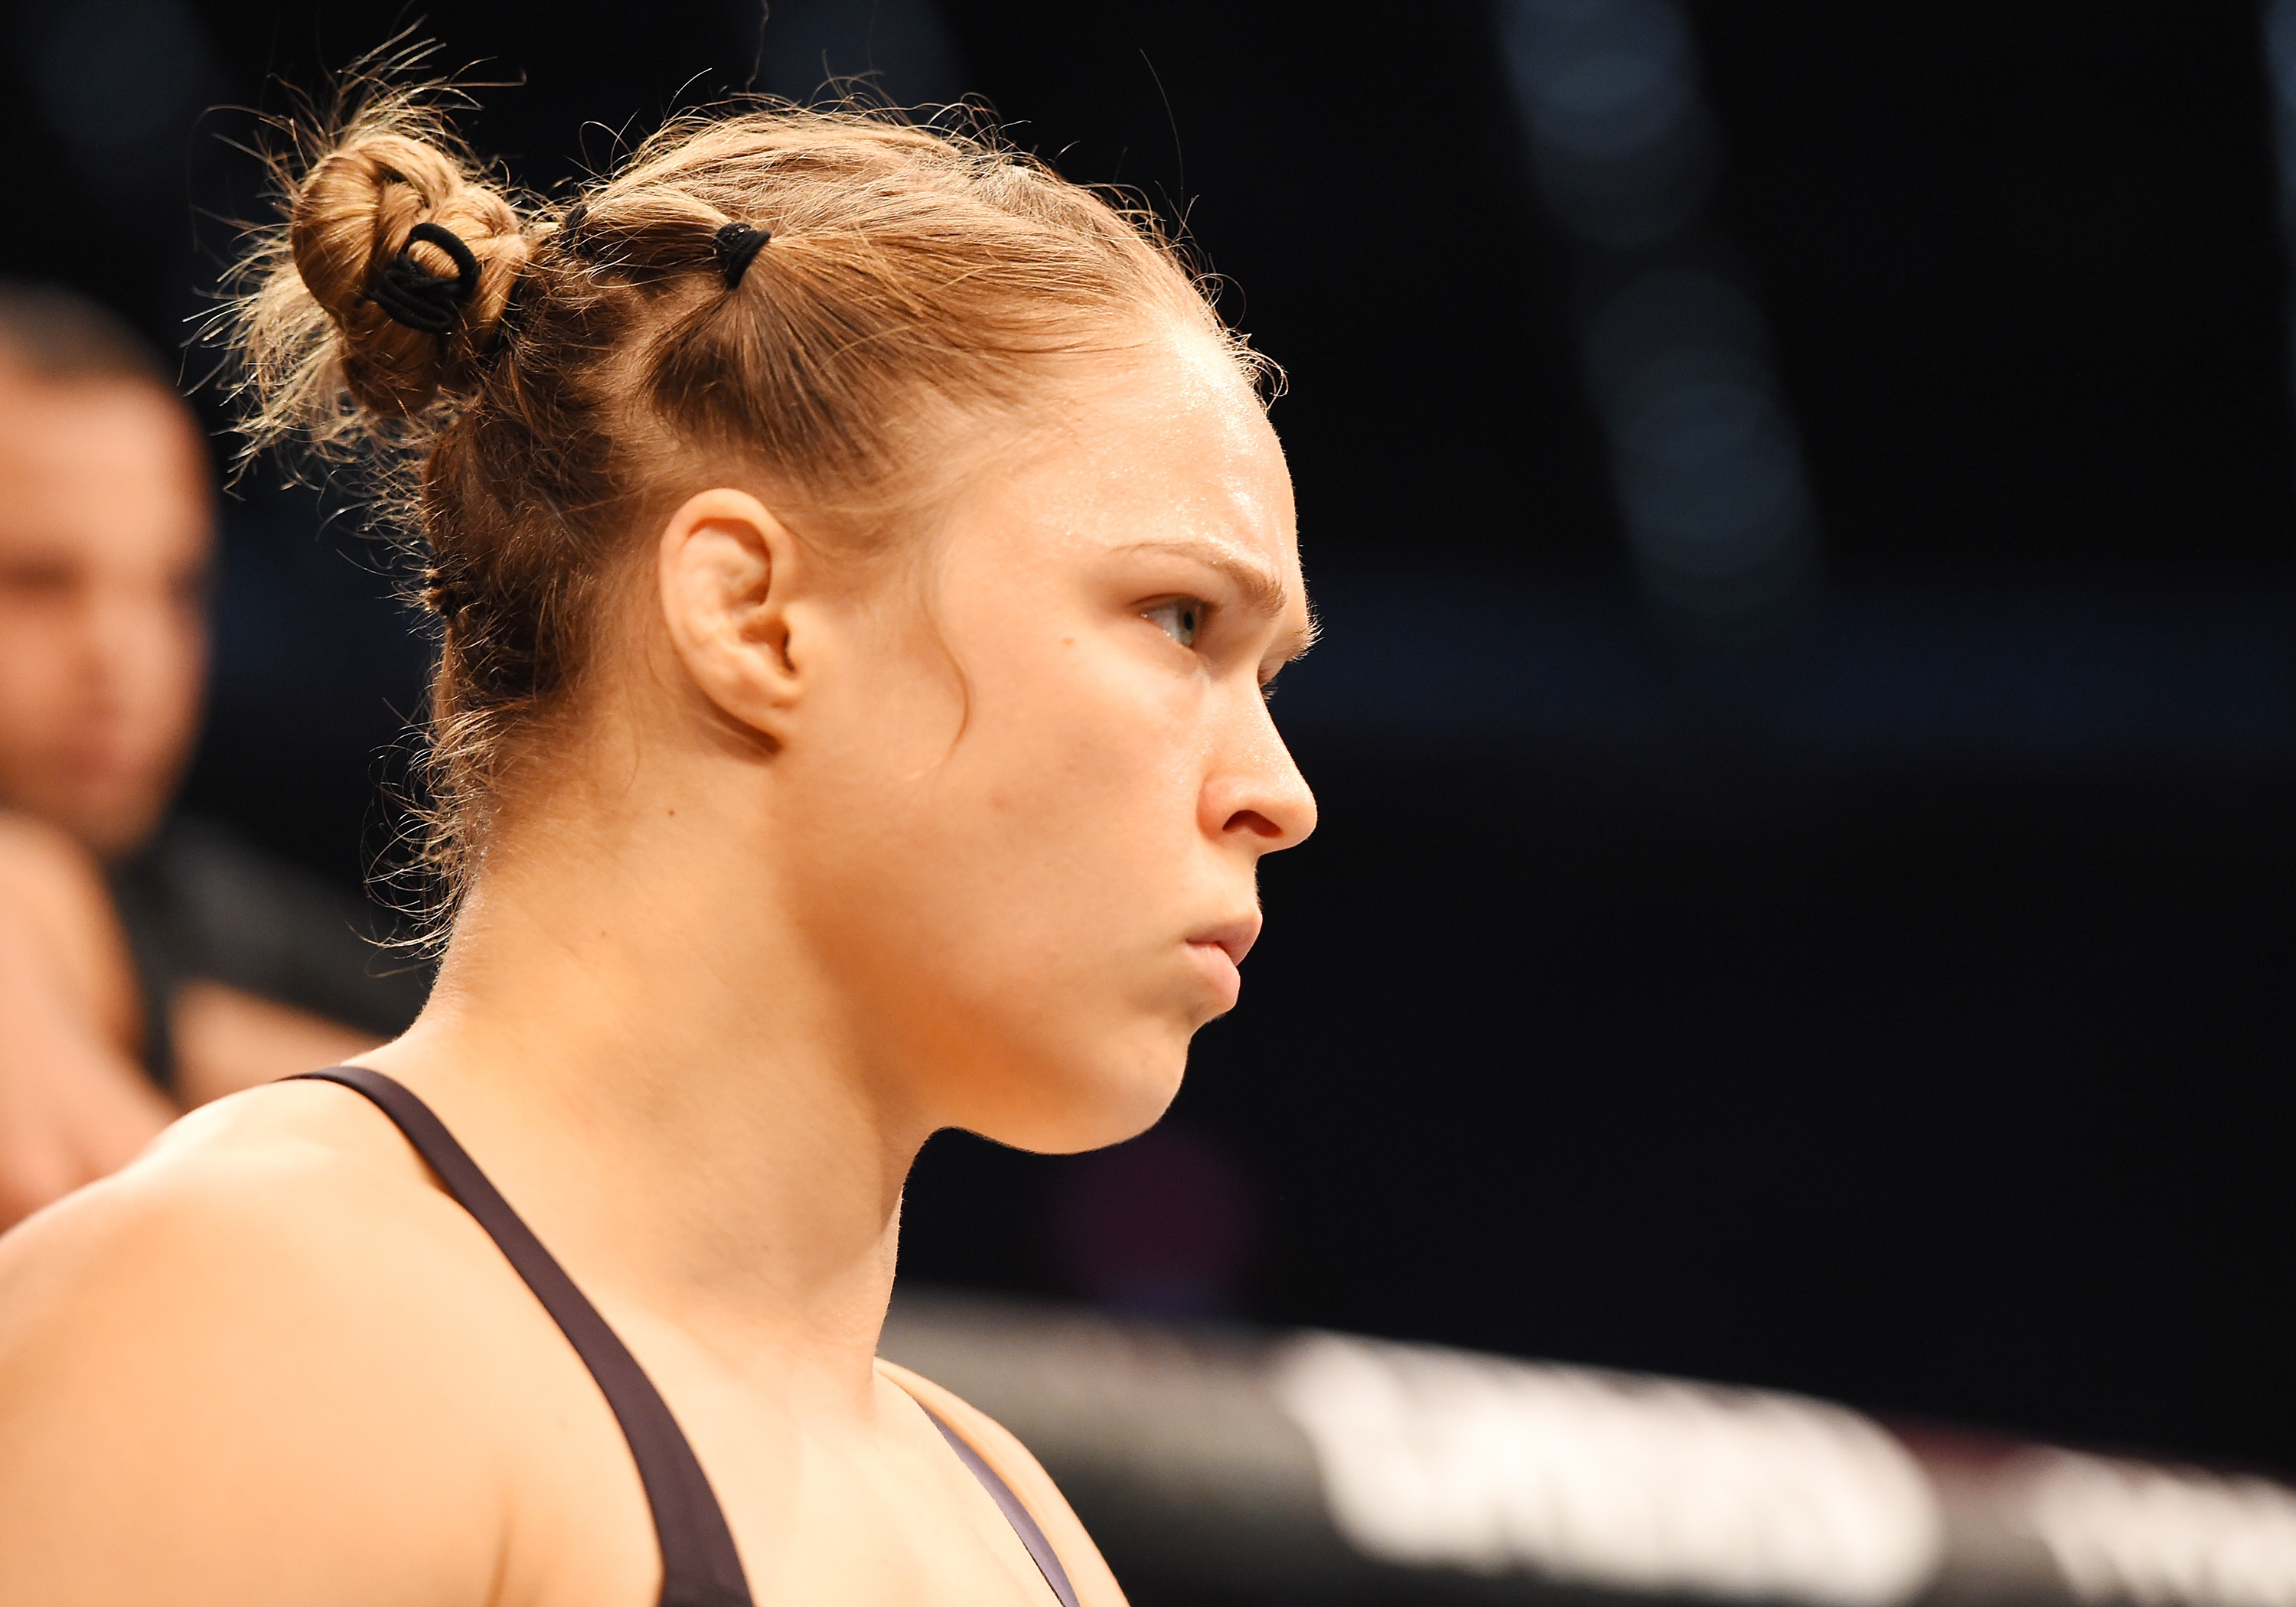 MELBOURNE, AUSTRALIA - NOVEMBER 15:  Ronda Rousey looks on before facing Holly Holm (not pictured) in their UFC women's bantamweight championship bout during the UFC 193 event at Etihad Stadium on November 15, 2015 in Melbourne, Australia.  (Photo by Josh Hedges/Zuffa LLC/Zuffa LLC via Getty Images)